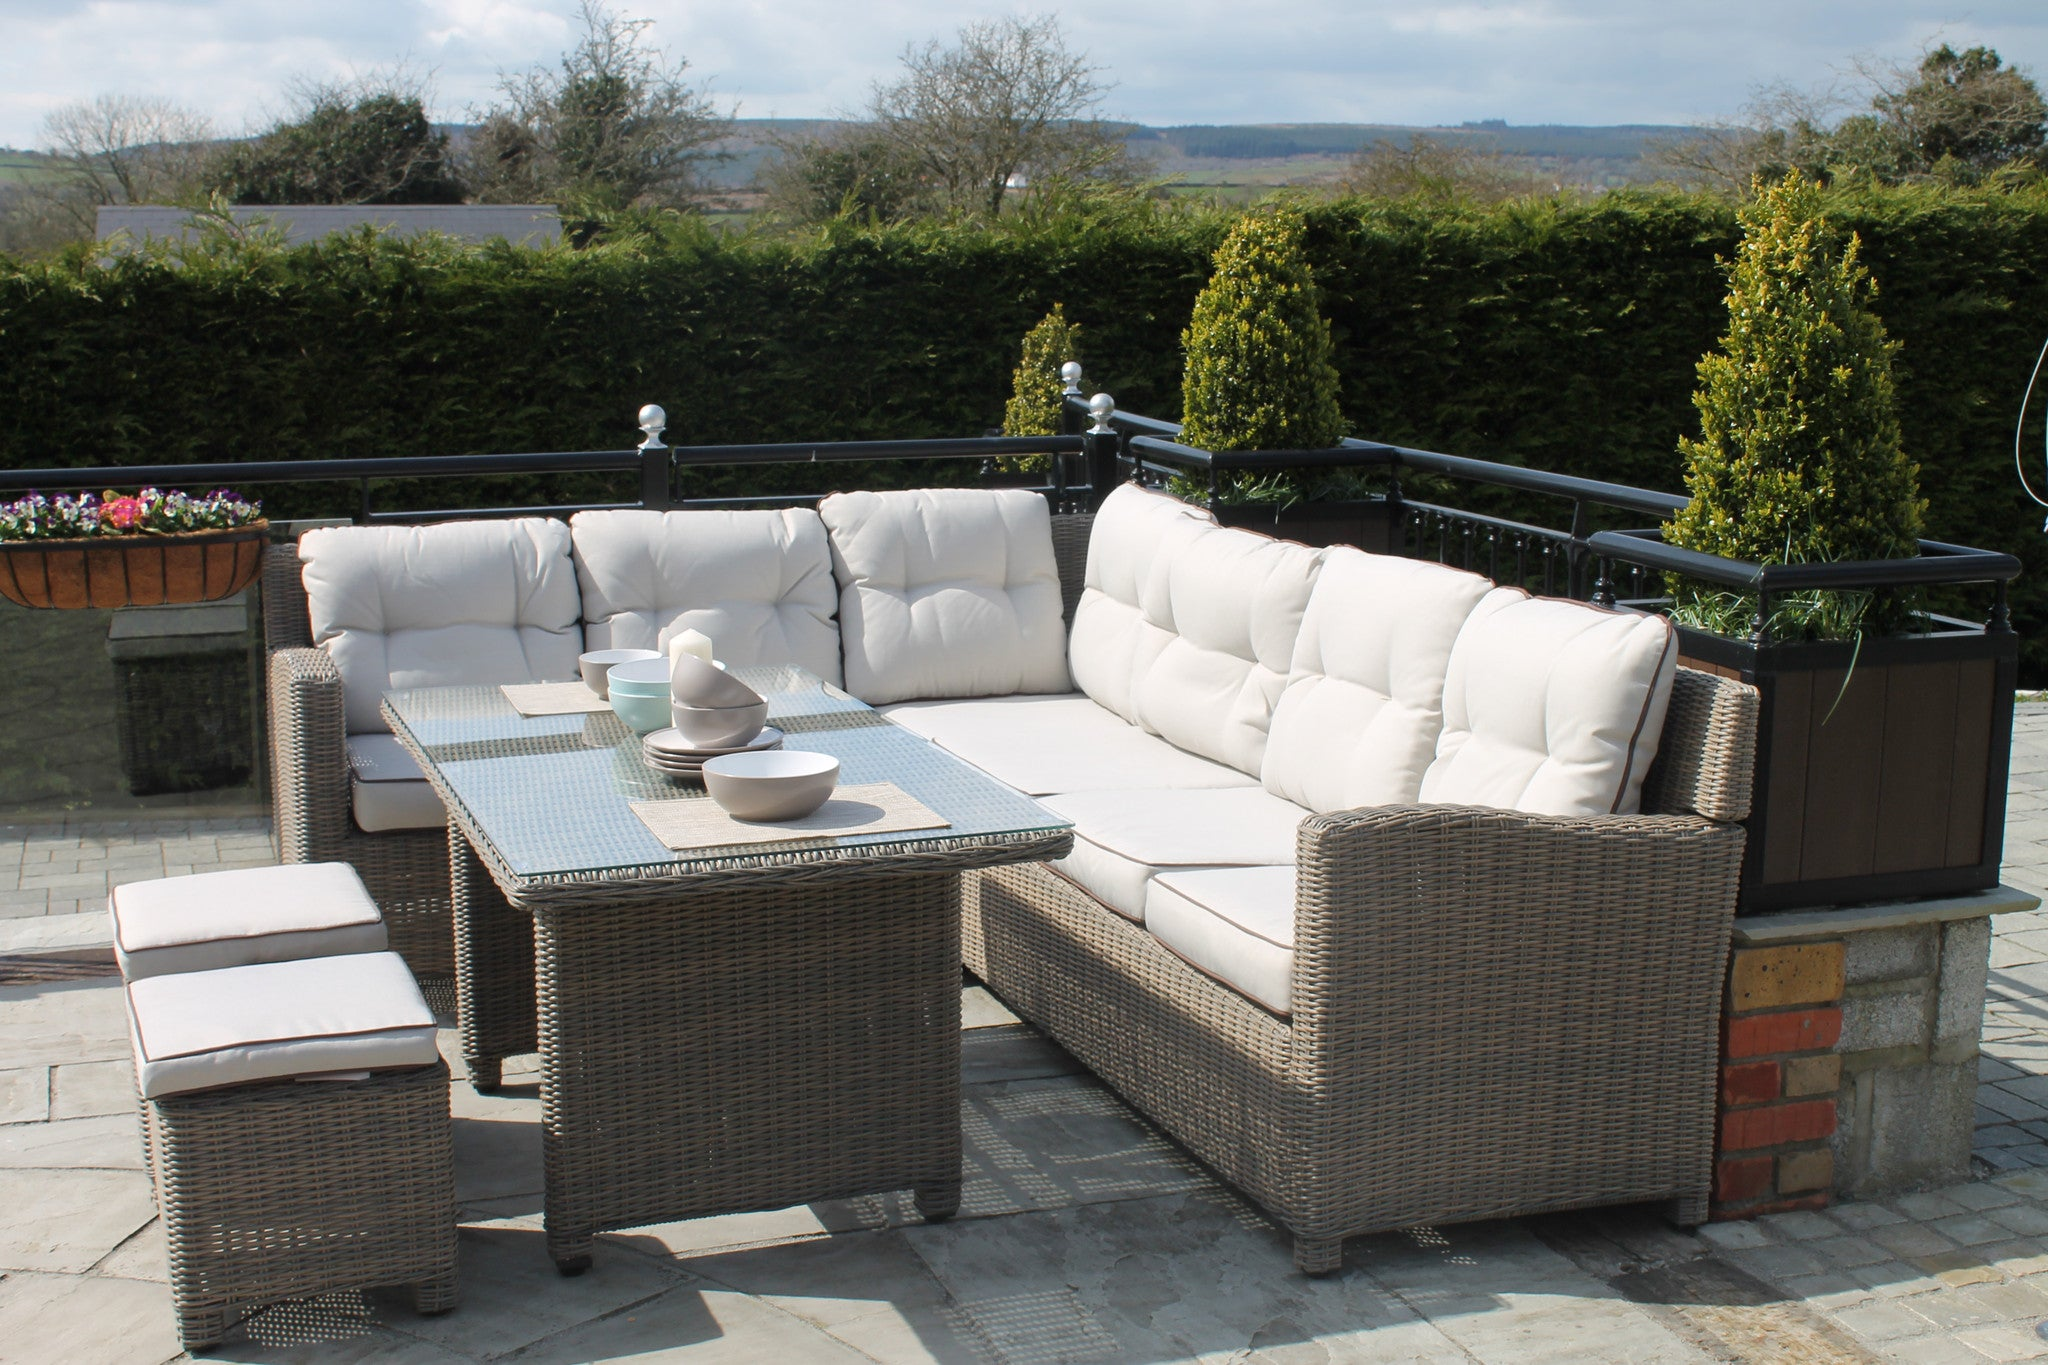 Rattan lounge set  Mount Brandon Rattan Lounge Set - Instyle Garden Furniture